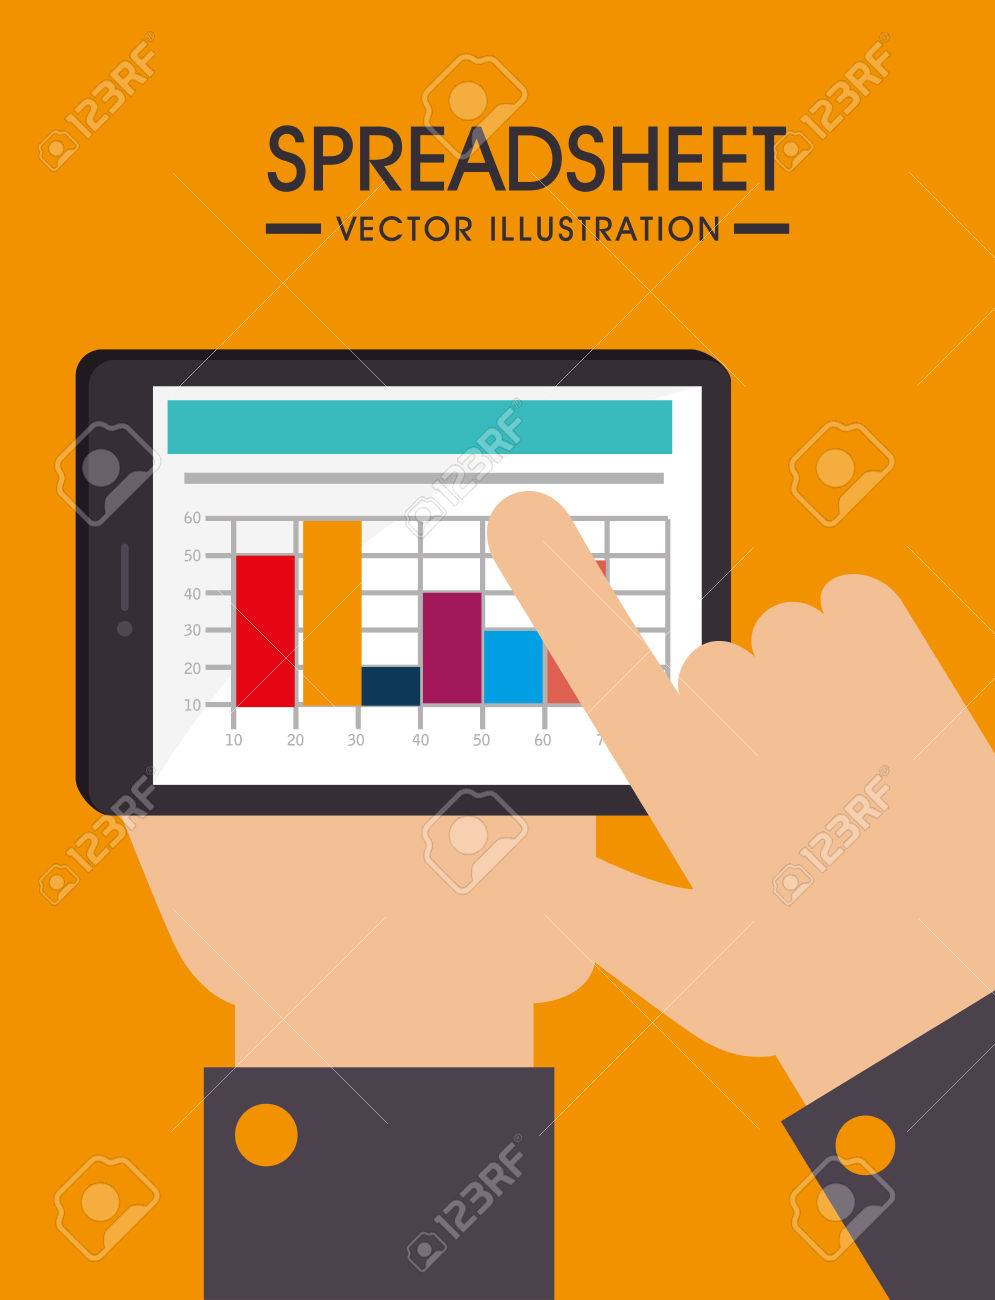 Spreadsheet design illustration